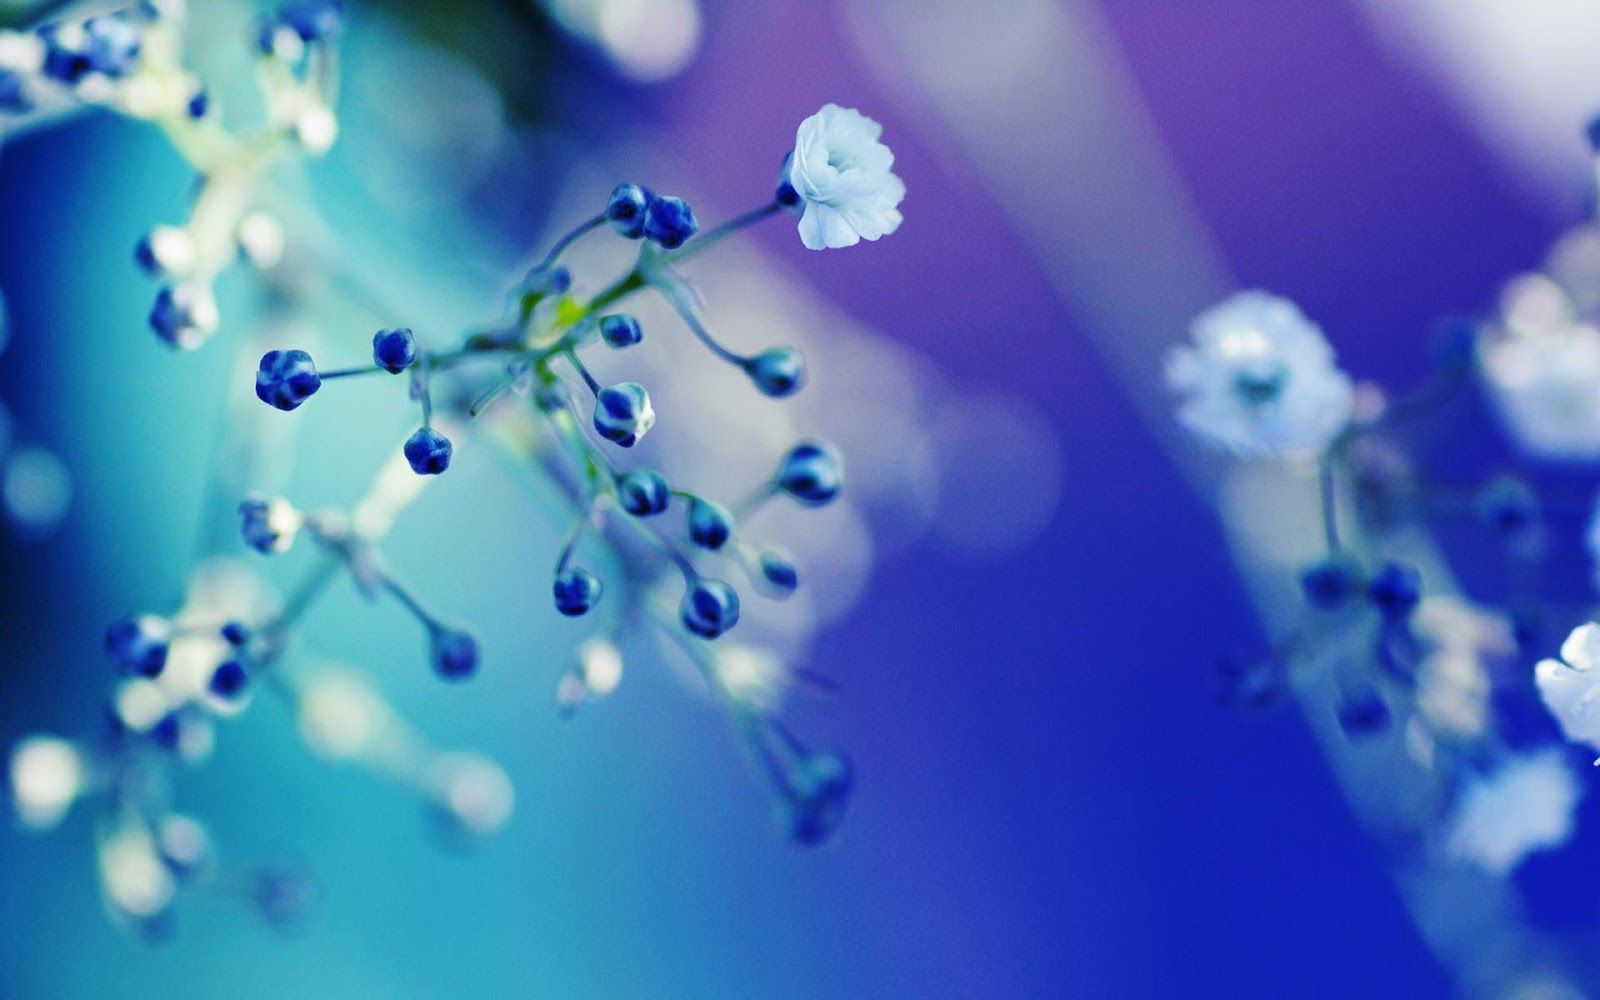 Blue Flowers Blue White Flower Close Up Wallpaper Hd Blue Is The